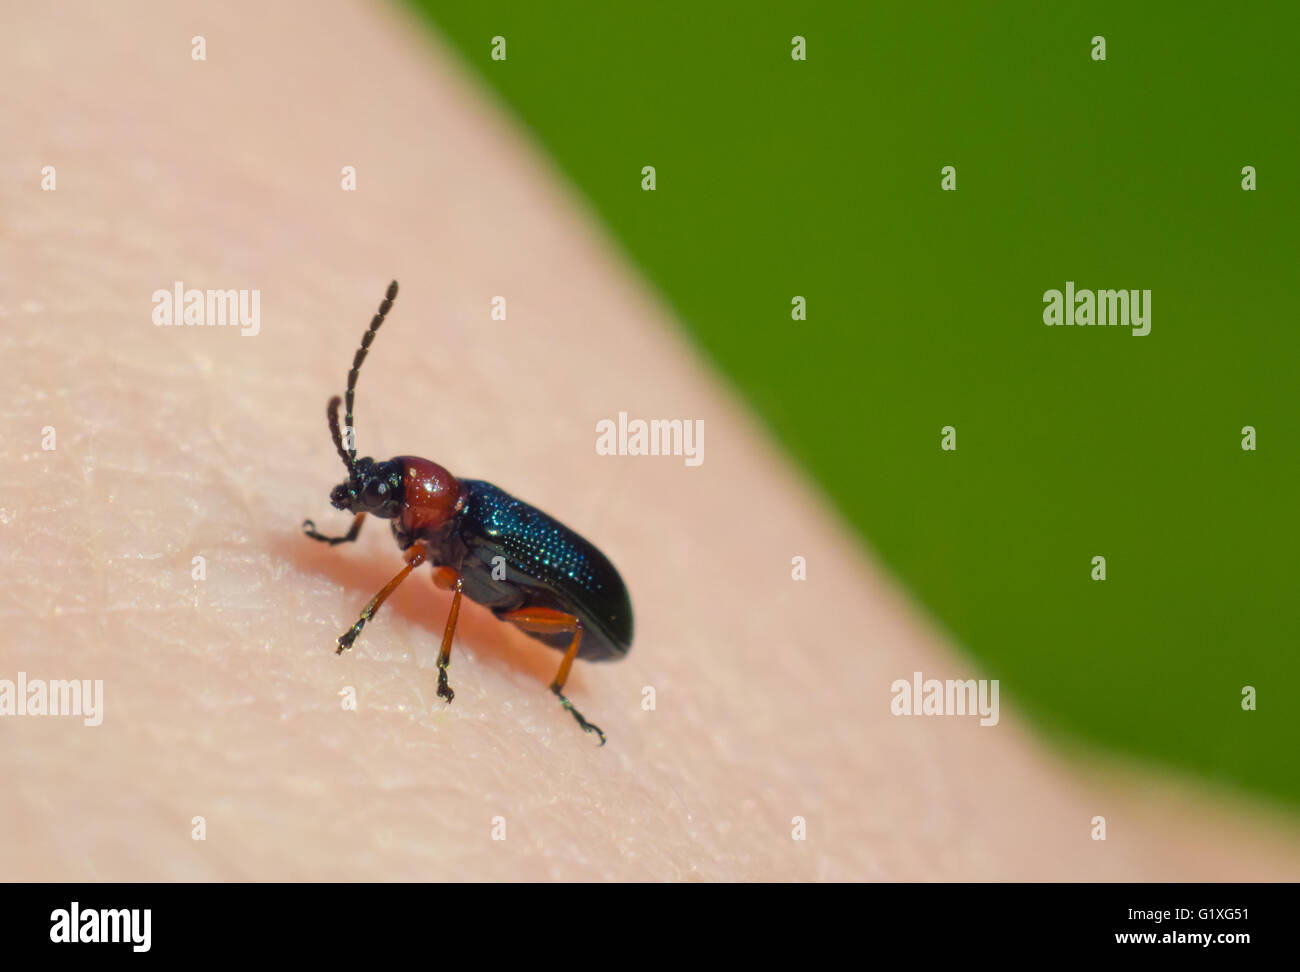 Red and black soft beetle on human skin - Stock Image